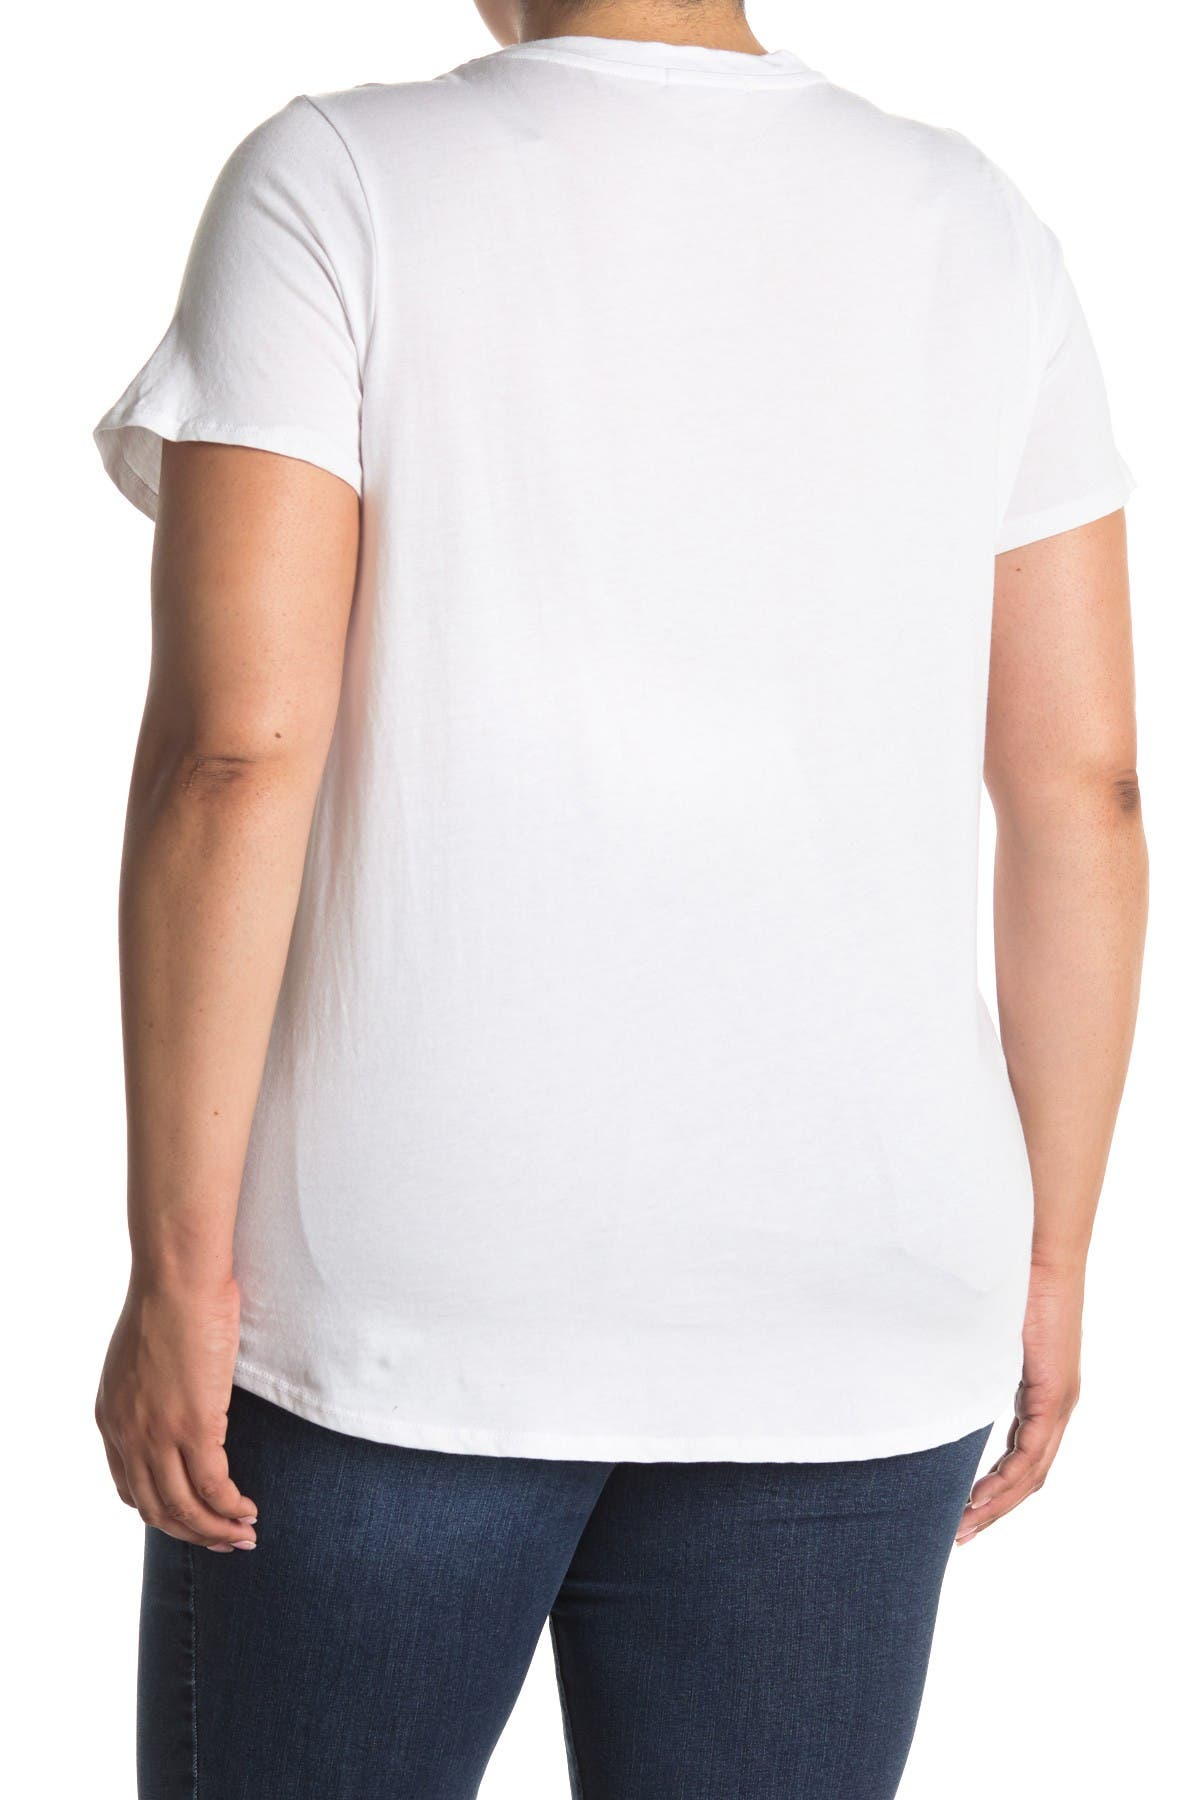 Image of Knit Riot Slouchy Short Sleeve Be Kind Tee